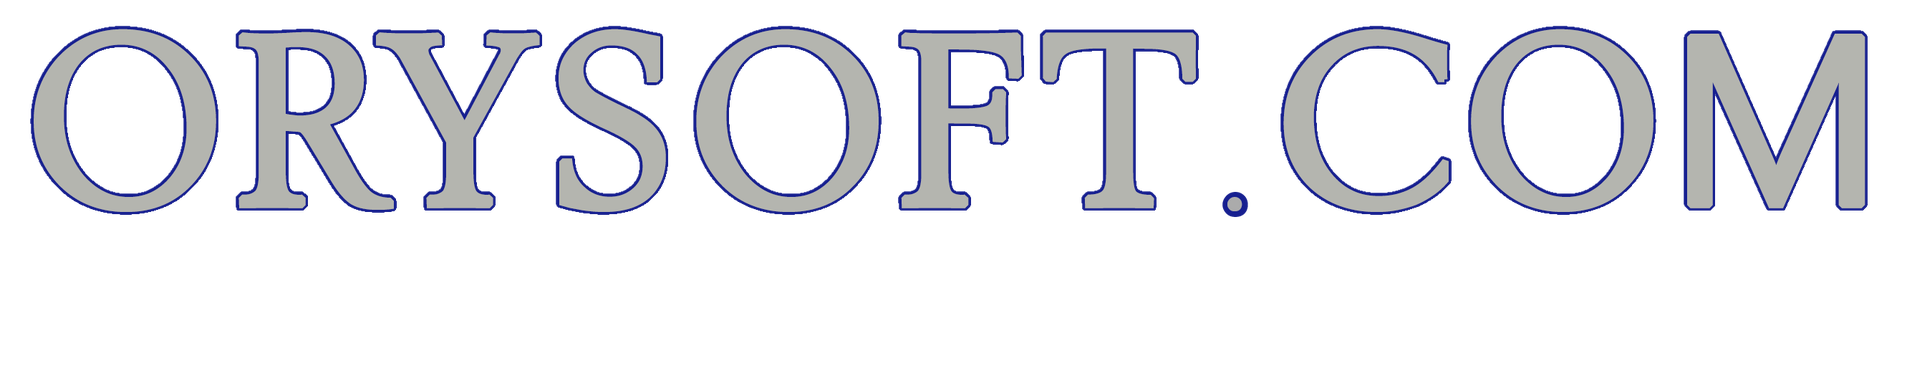 Ordenadores y Software S.L. - Orysoft